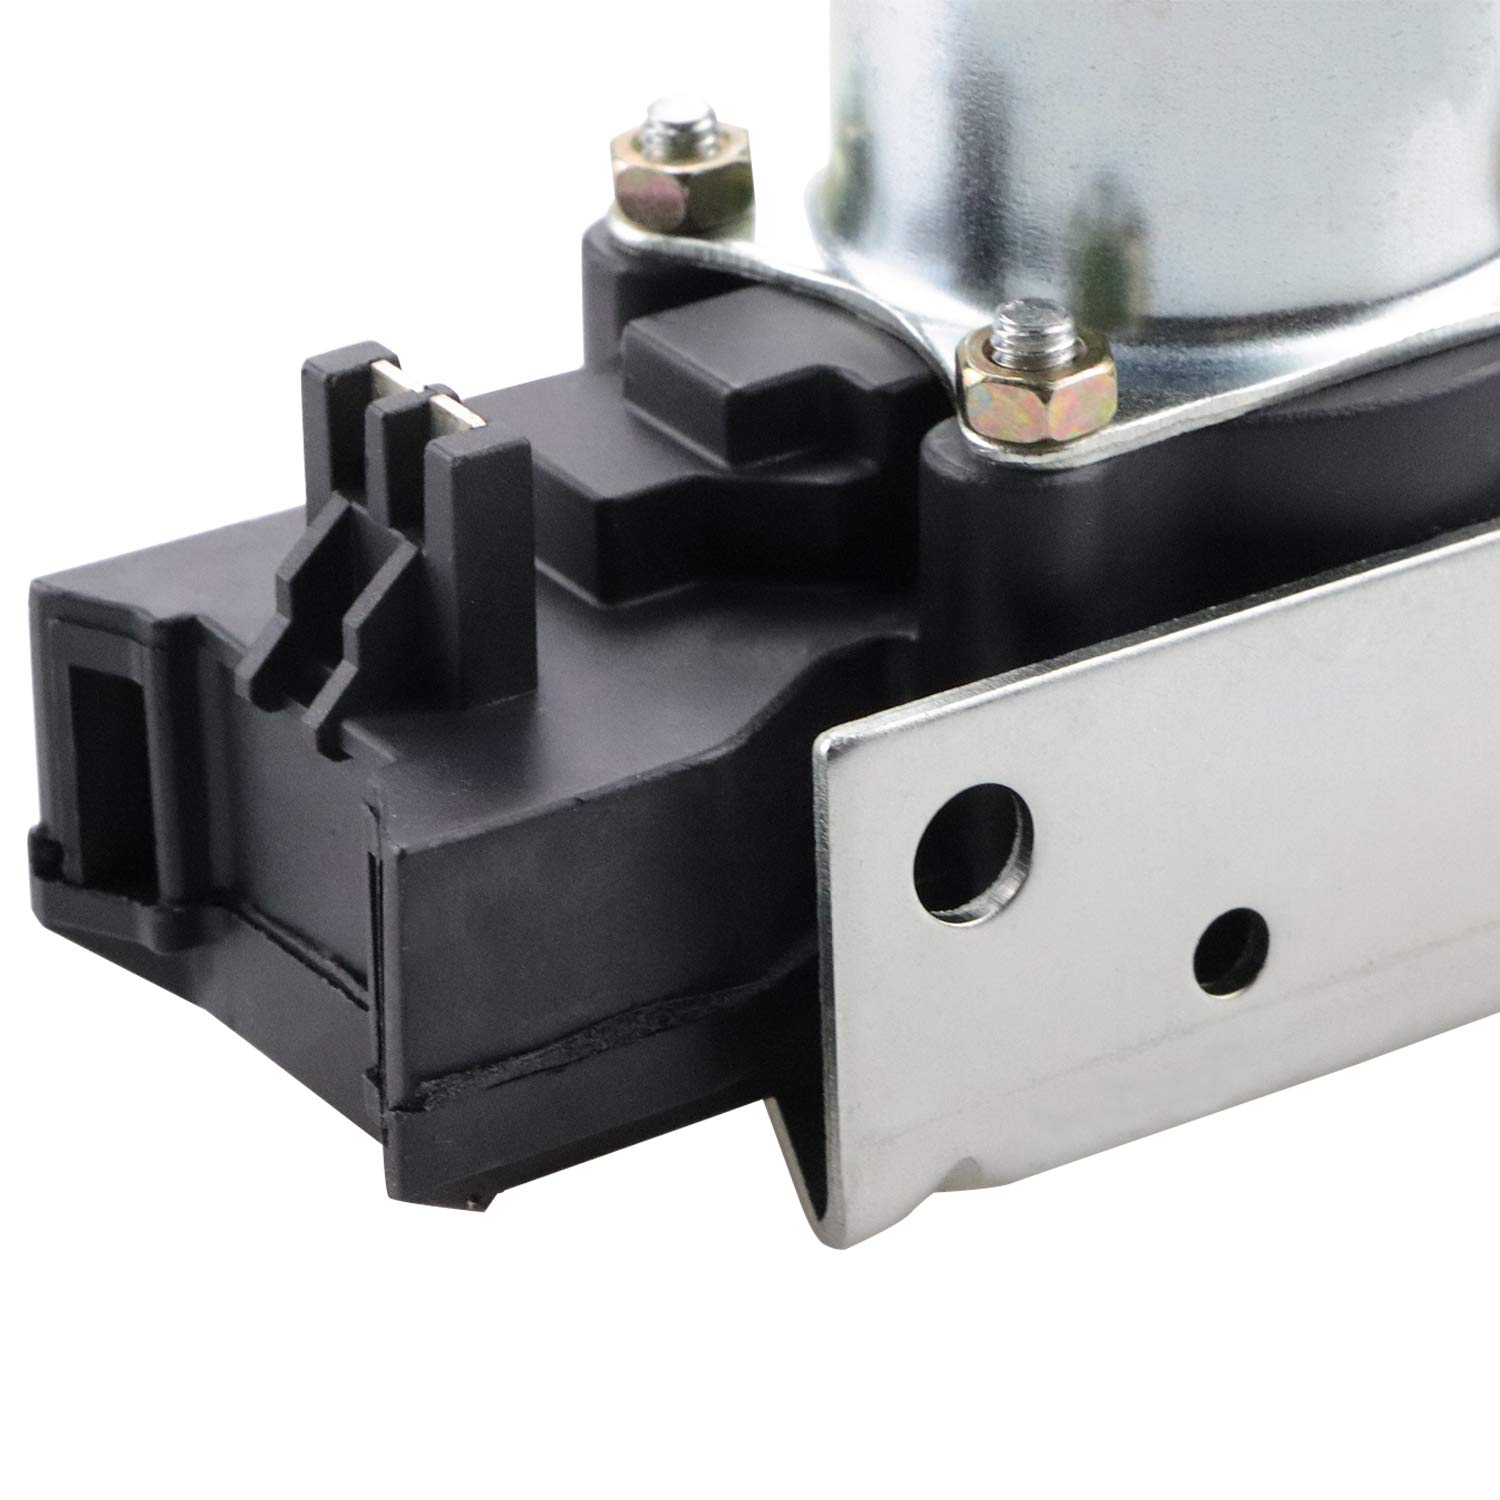 Driver or Passenger Side 22062740 746014 Chevy 16603085 GMC, Dantoo Power Door Lock Actuator 22071947 746-014 J8134627 Replaces 22020256 Fits Buick 1719363 Cadillac 8134627 1719362